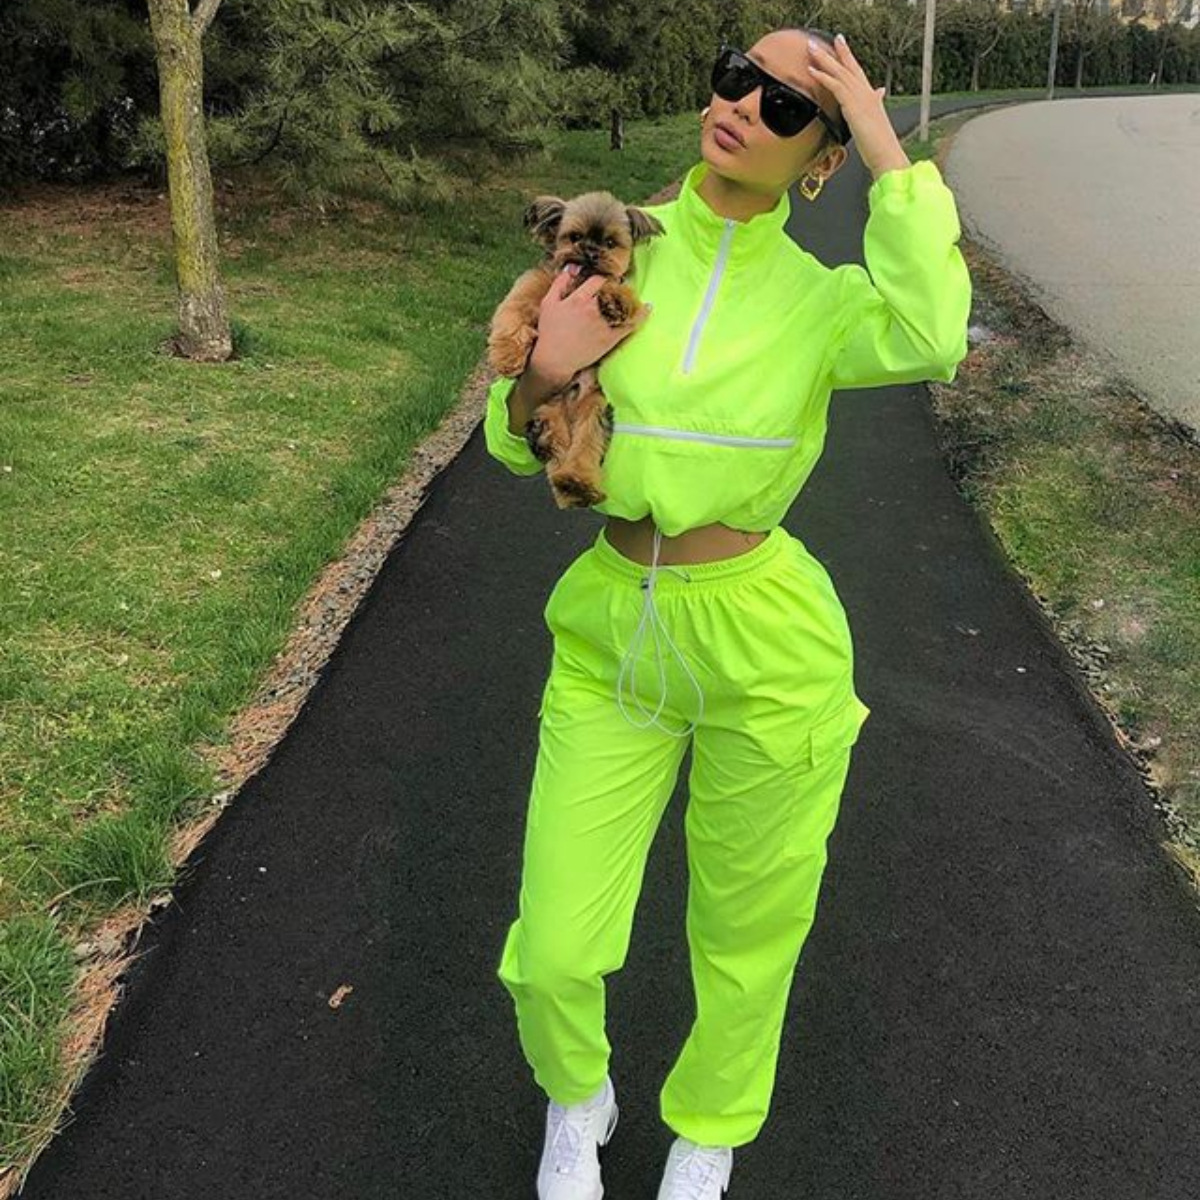 >2019 Neon <font><b>Color</b></font> Women Sets Workout Fashion Two Piece <font><b>Outfits</b></font> <font><b>Casual</b></font> Slim Zipper Top And Sweatpants Set Sporty Tracksuit